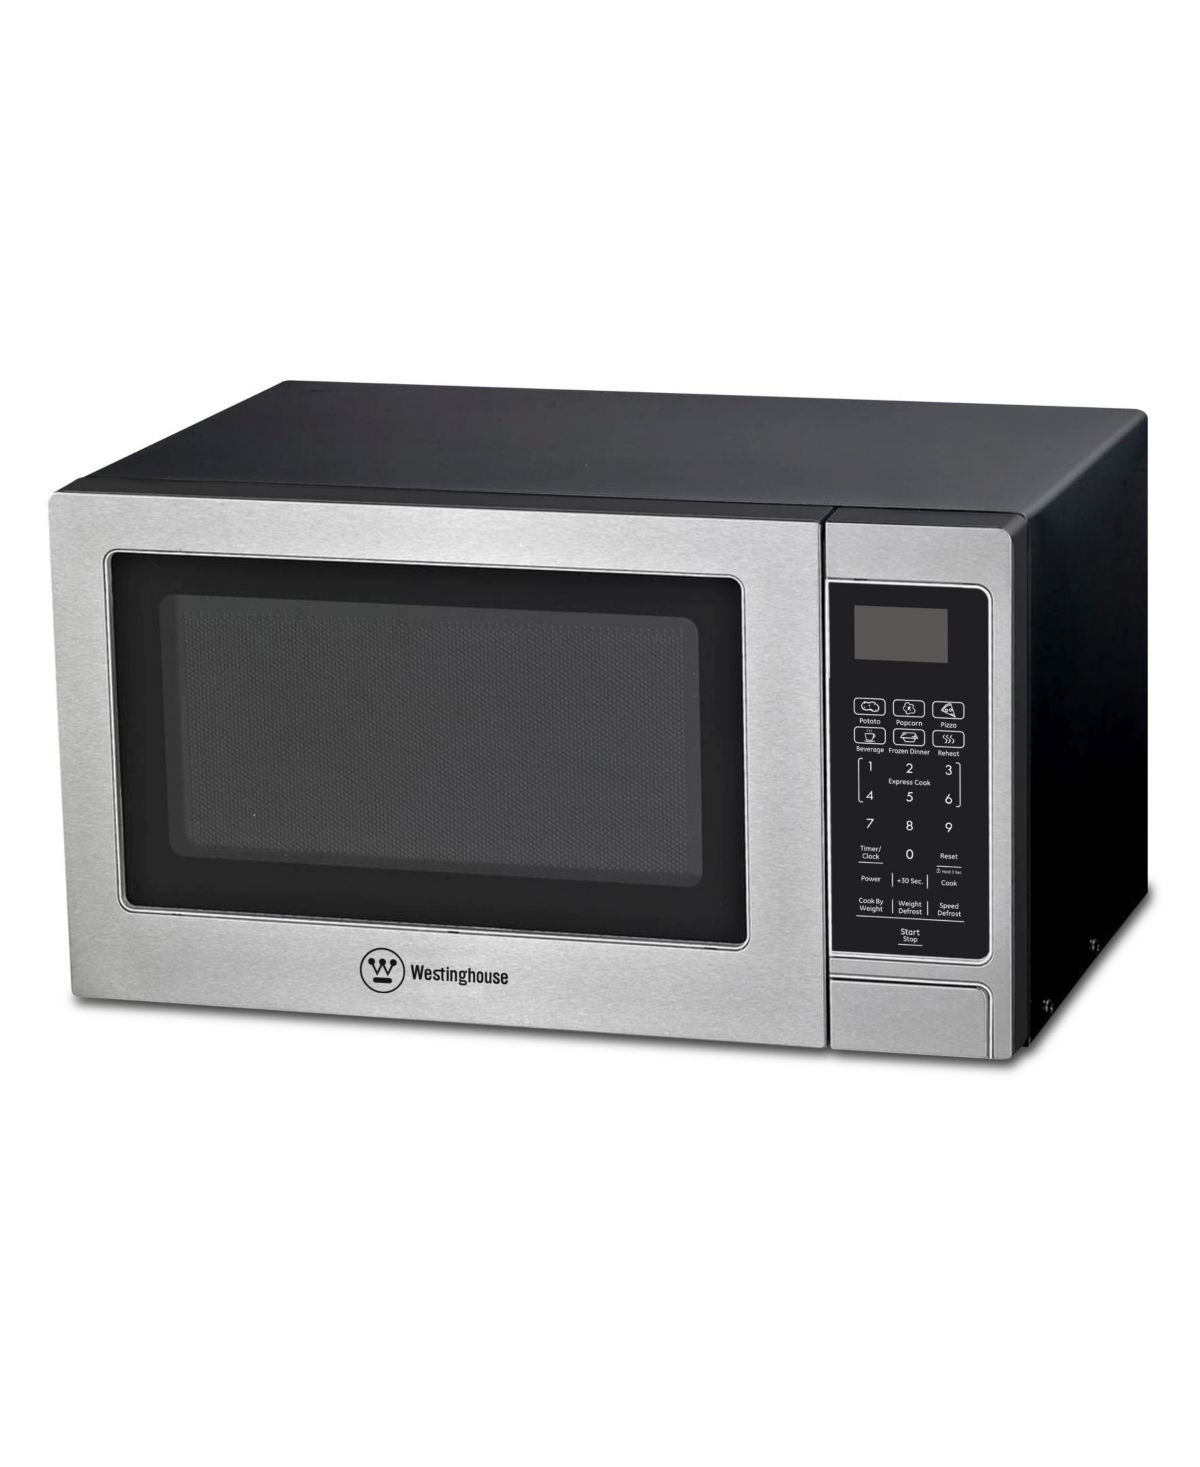 Westinghouse Microwave Oven Reviews Small Appliances Kitchen